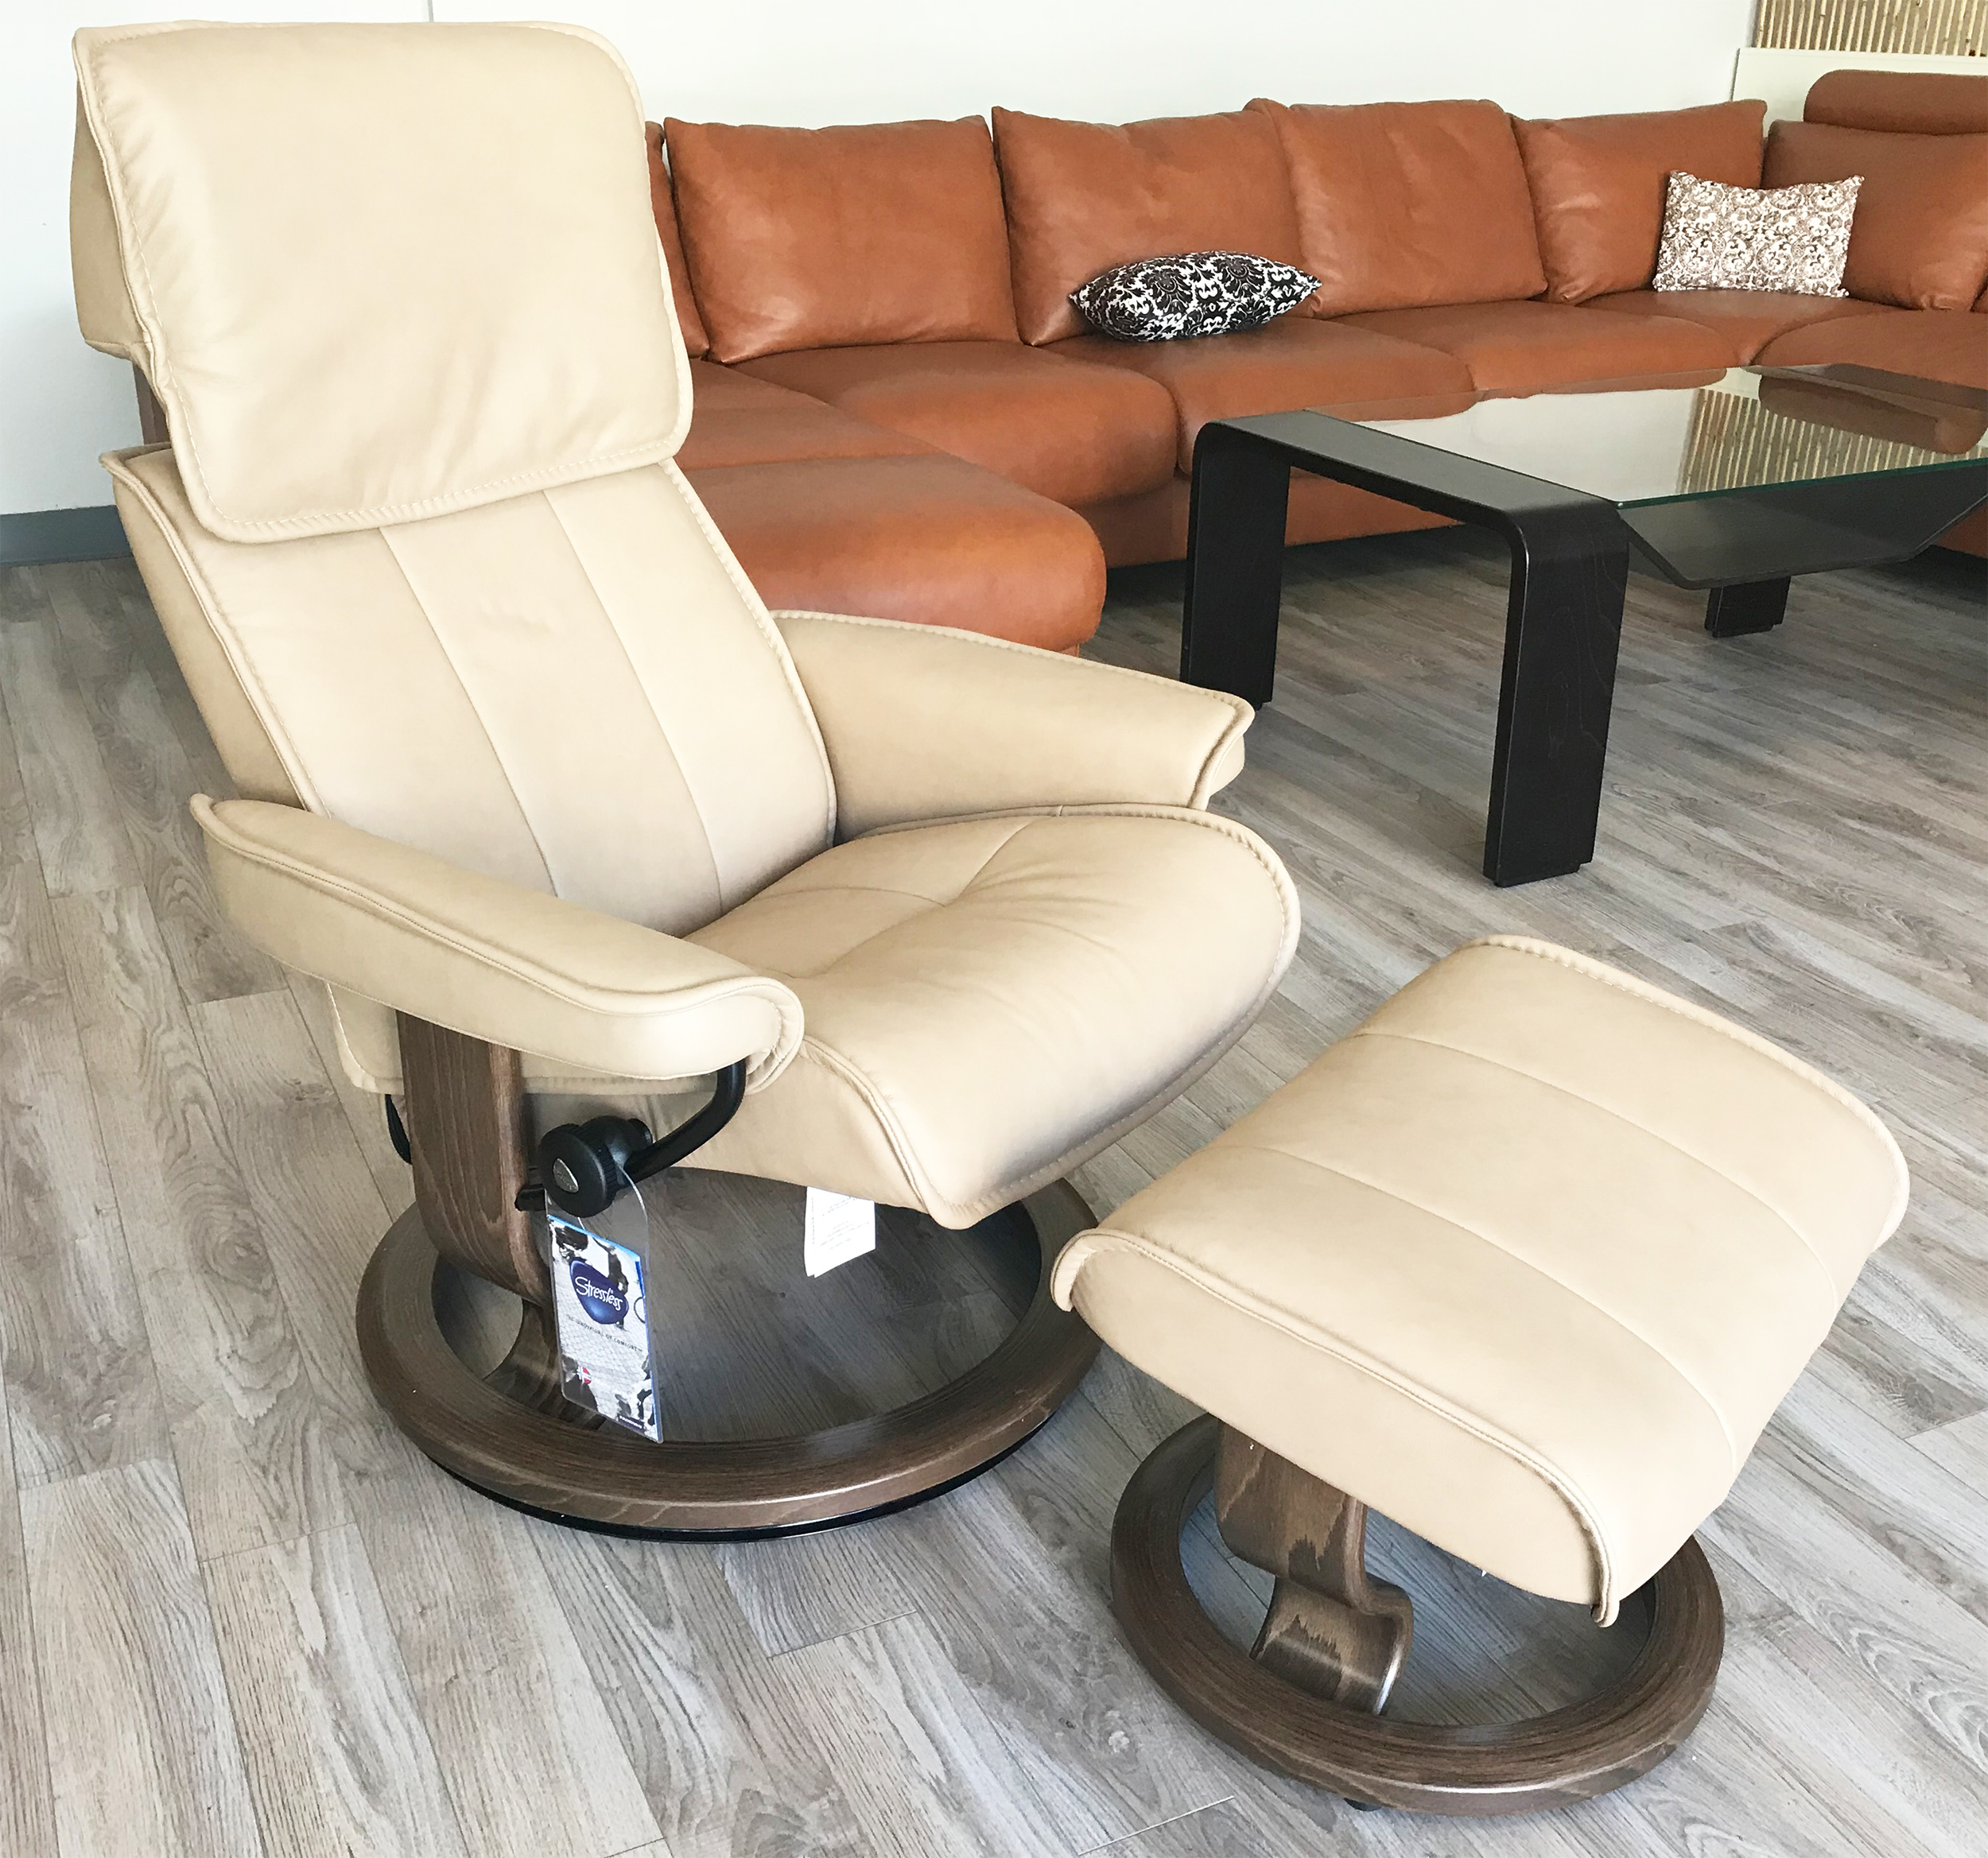 Leather Chairs With Ottoman Stressless Admiral Paloma Sand Leather Recliner Chair And Ottoman By Ekornes